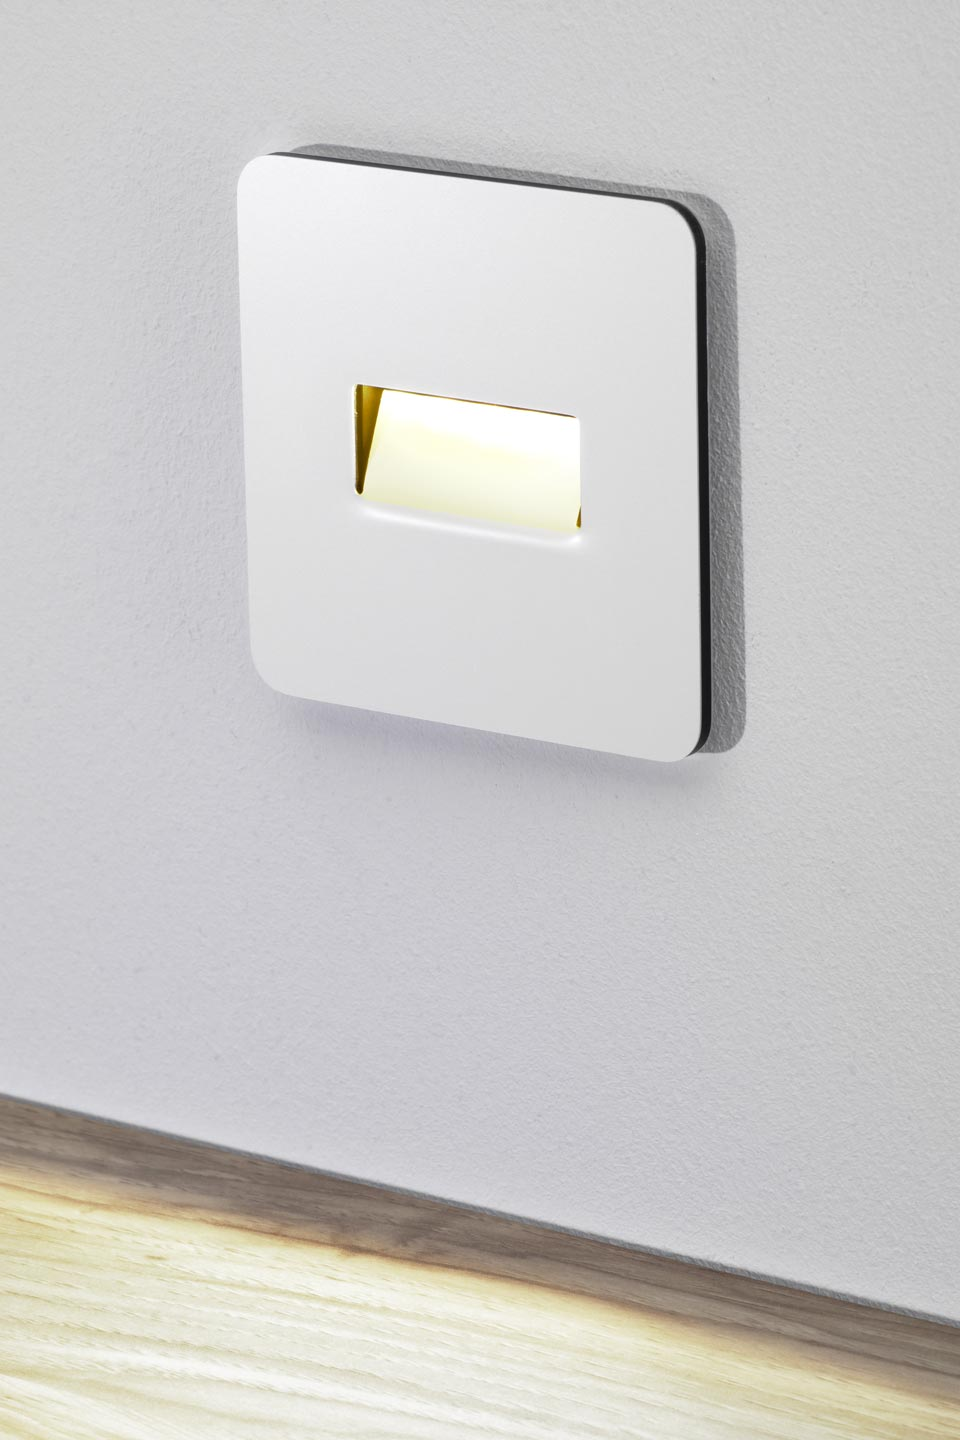 antares balise lumineuse murale led blanche r f 13030013. Black Bedroom Furniture Sets. Home Design Ideas